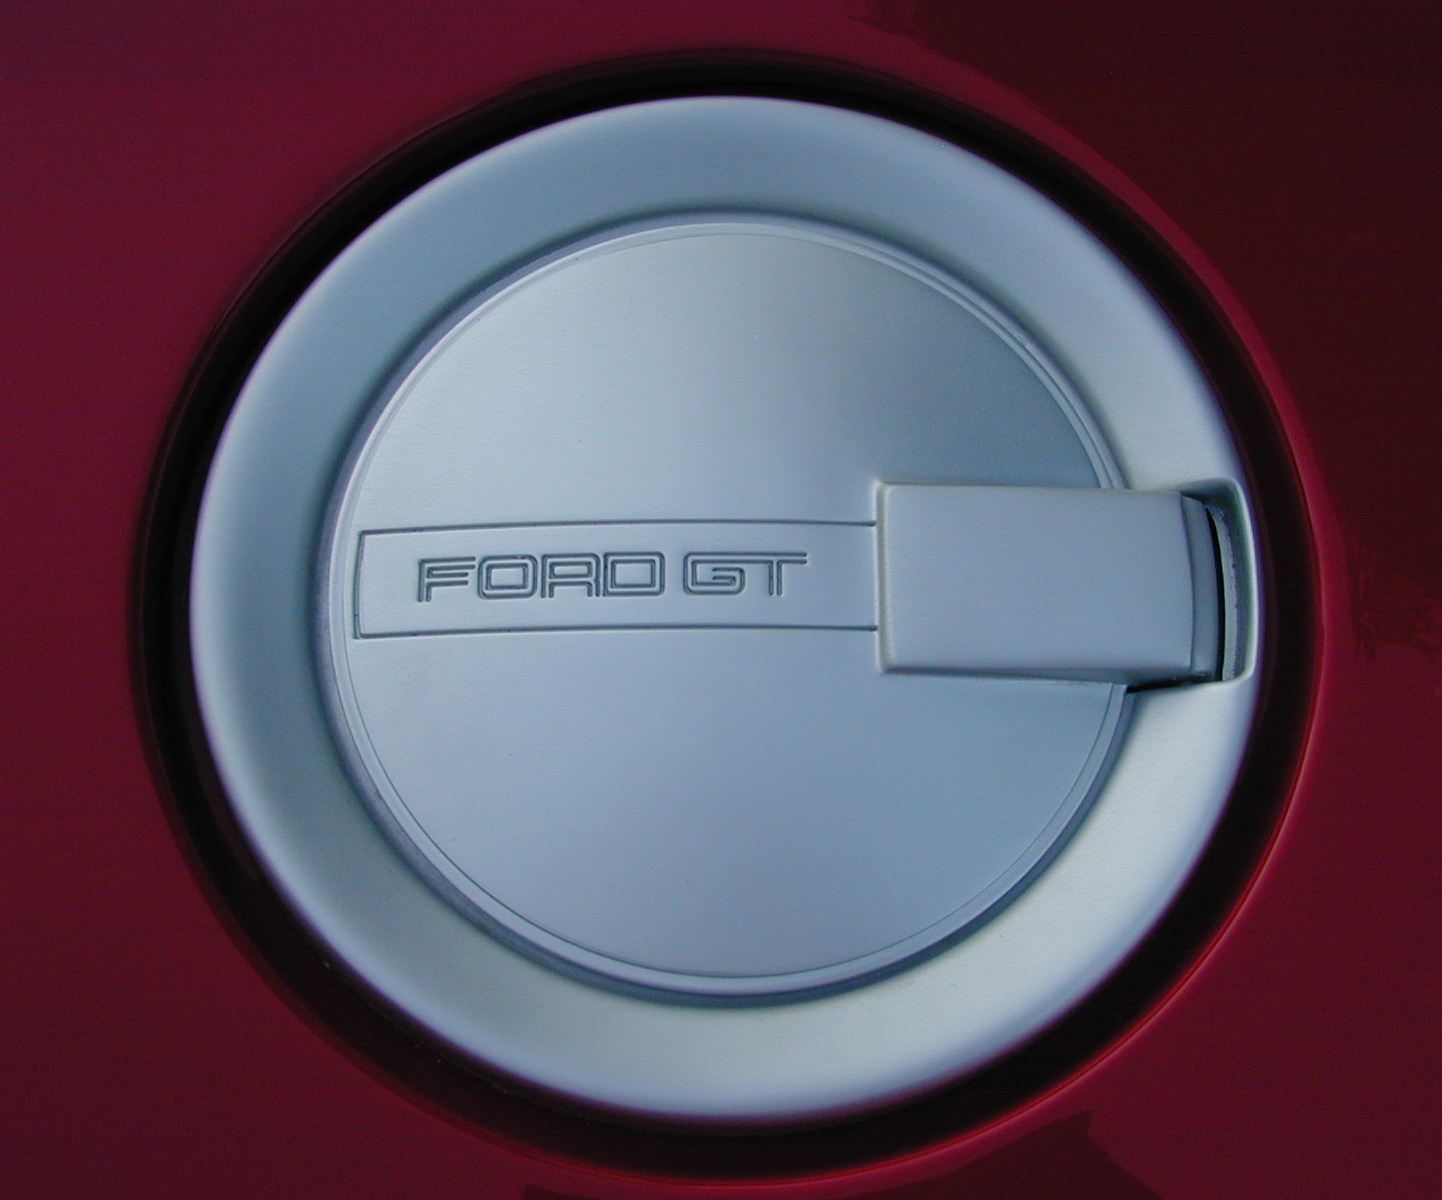 Prototype Ford GT Fuel Cap